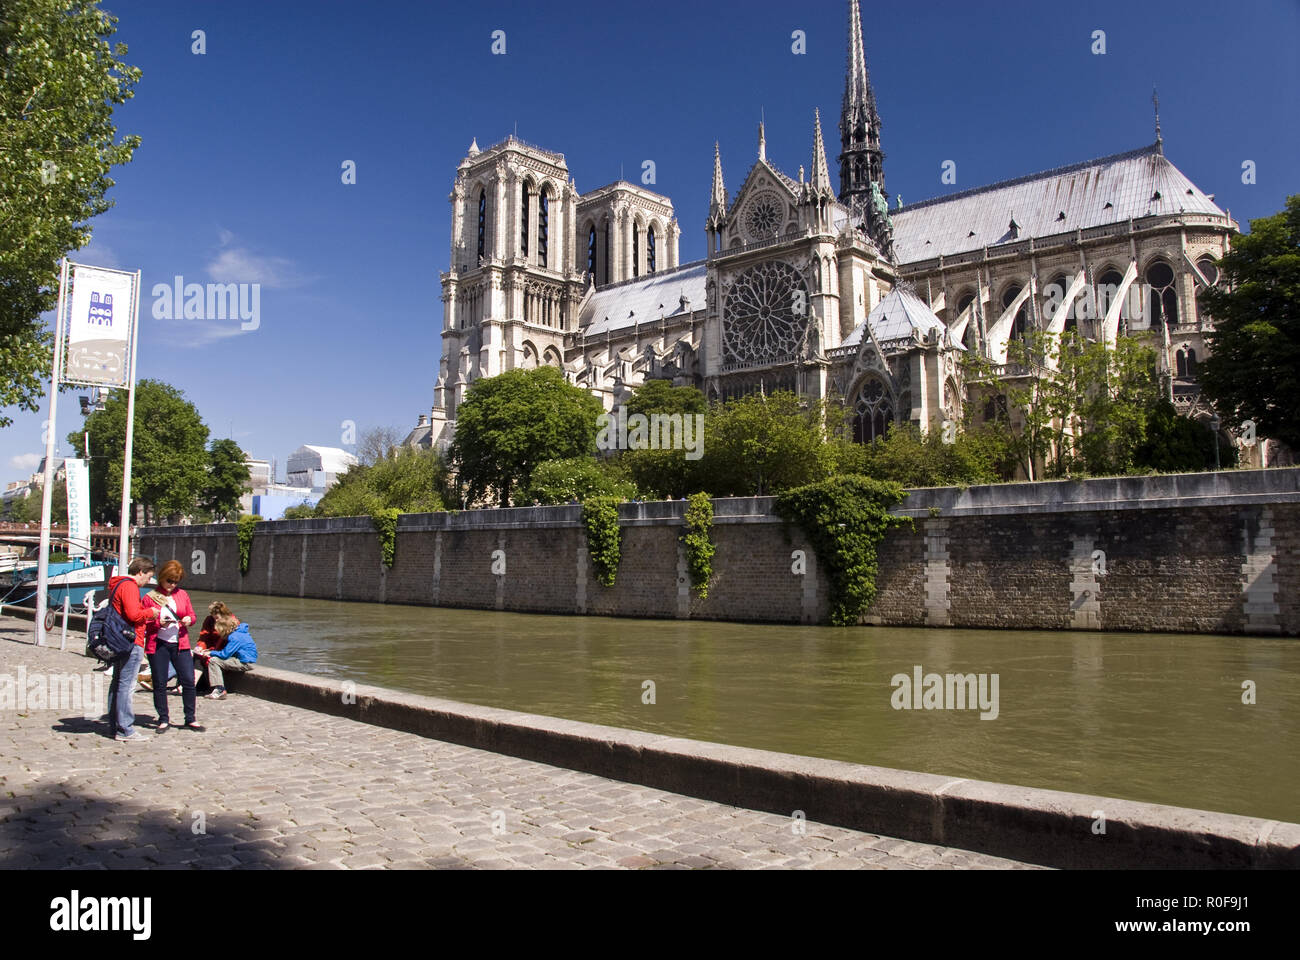 View of Notre Dame cathedral from a BatoBus (water bus) stop on the Seine river in Paris, France. Stock Photo